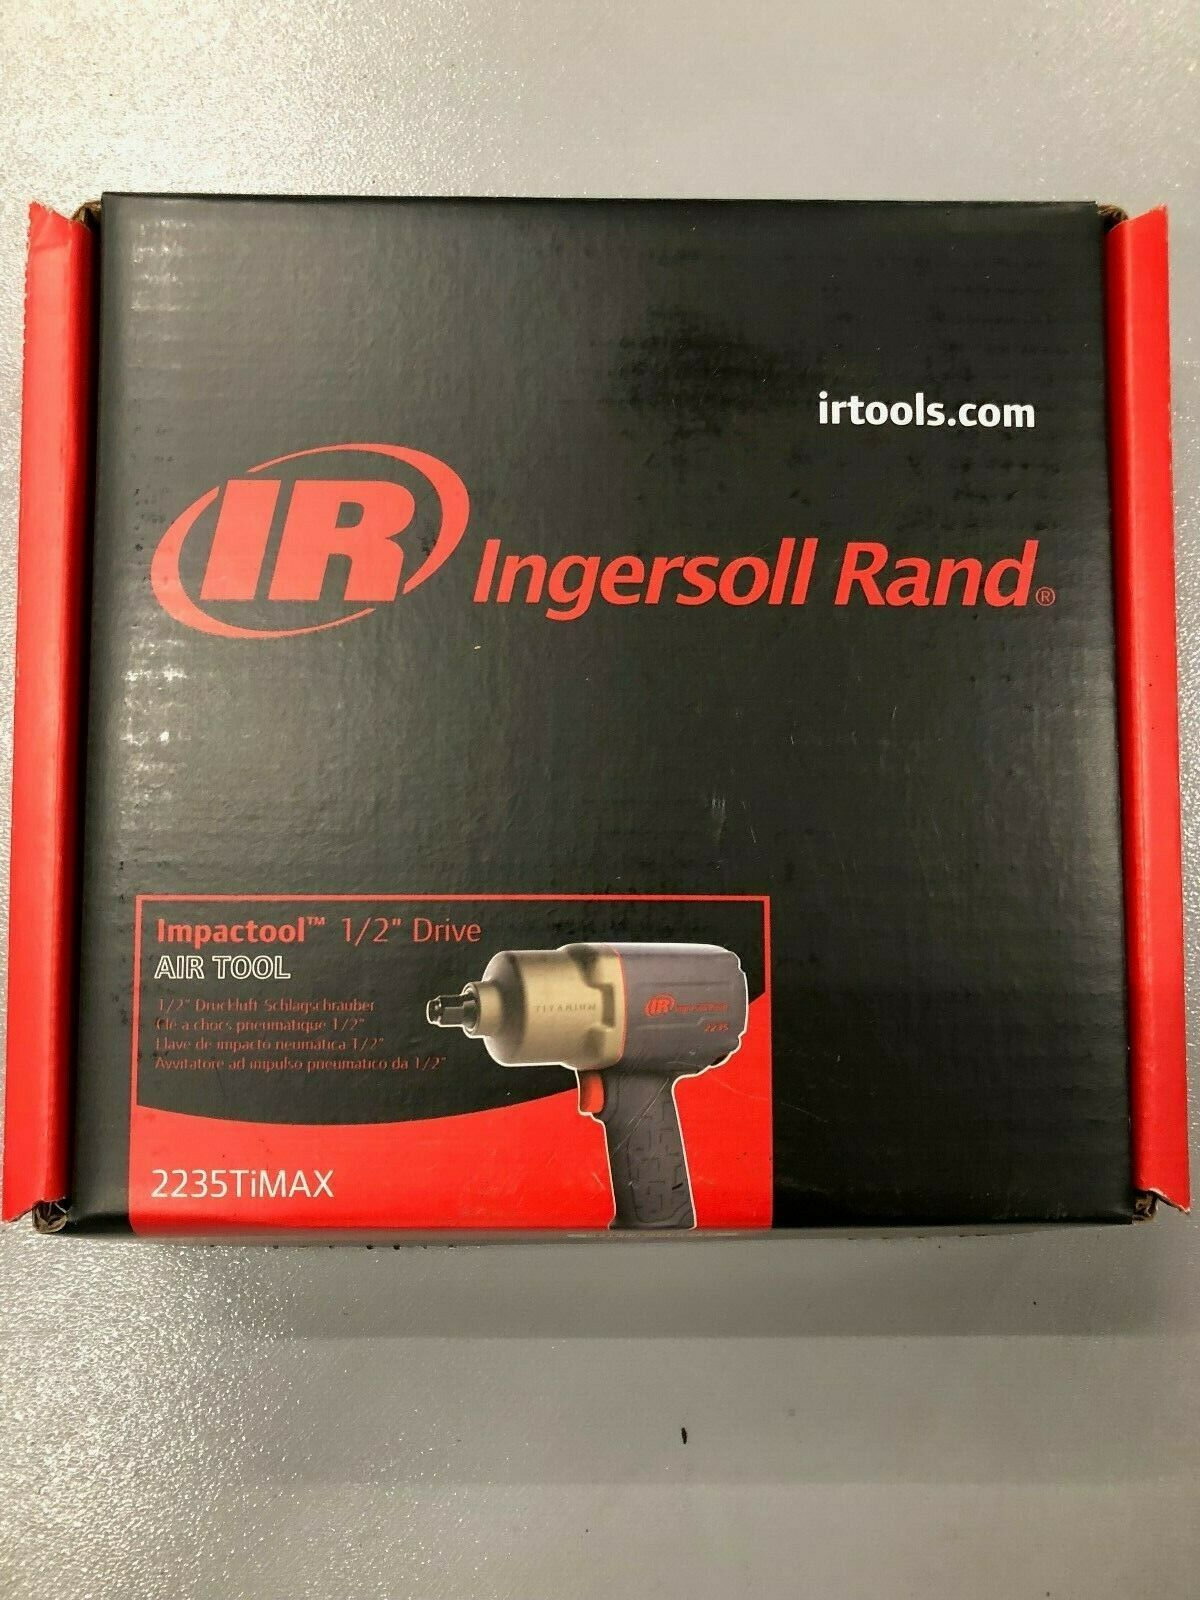 Ingersoll Rand (2235TIMAX) 1/2 Drive Air Impact Wrench. Buy it now for 265.00